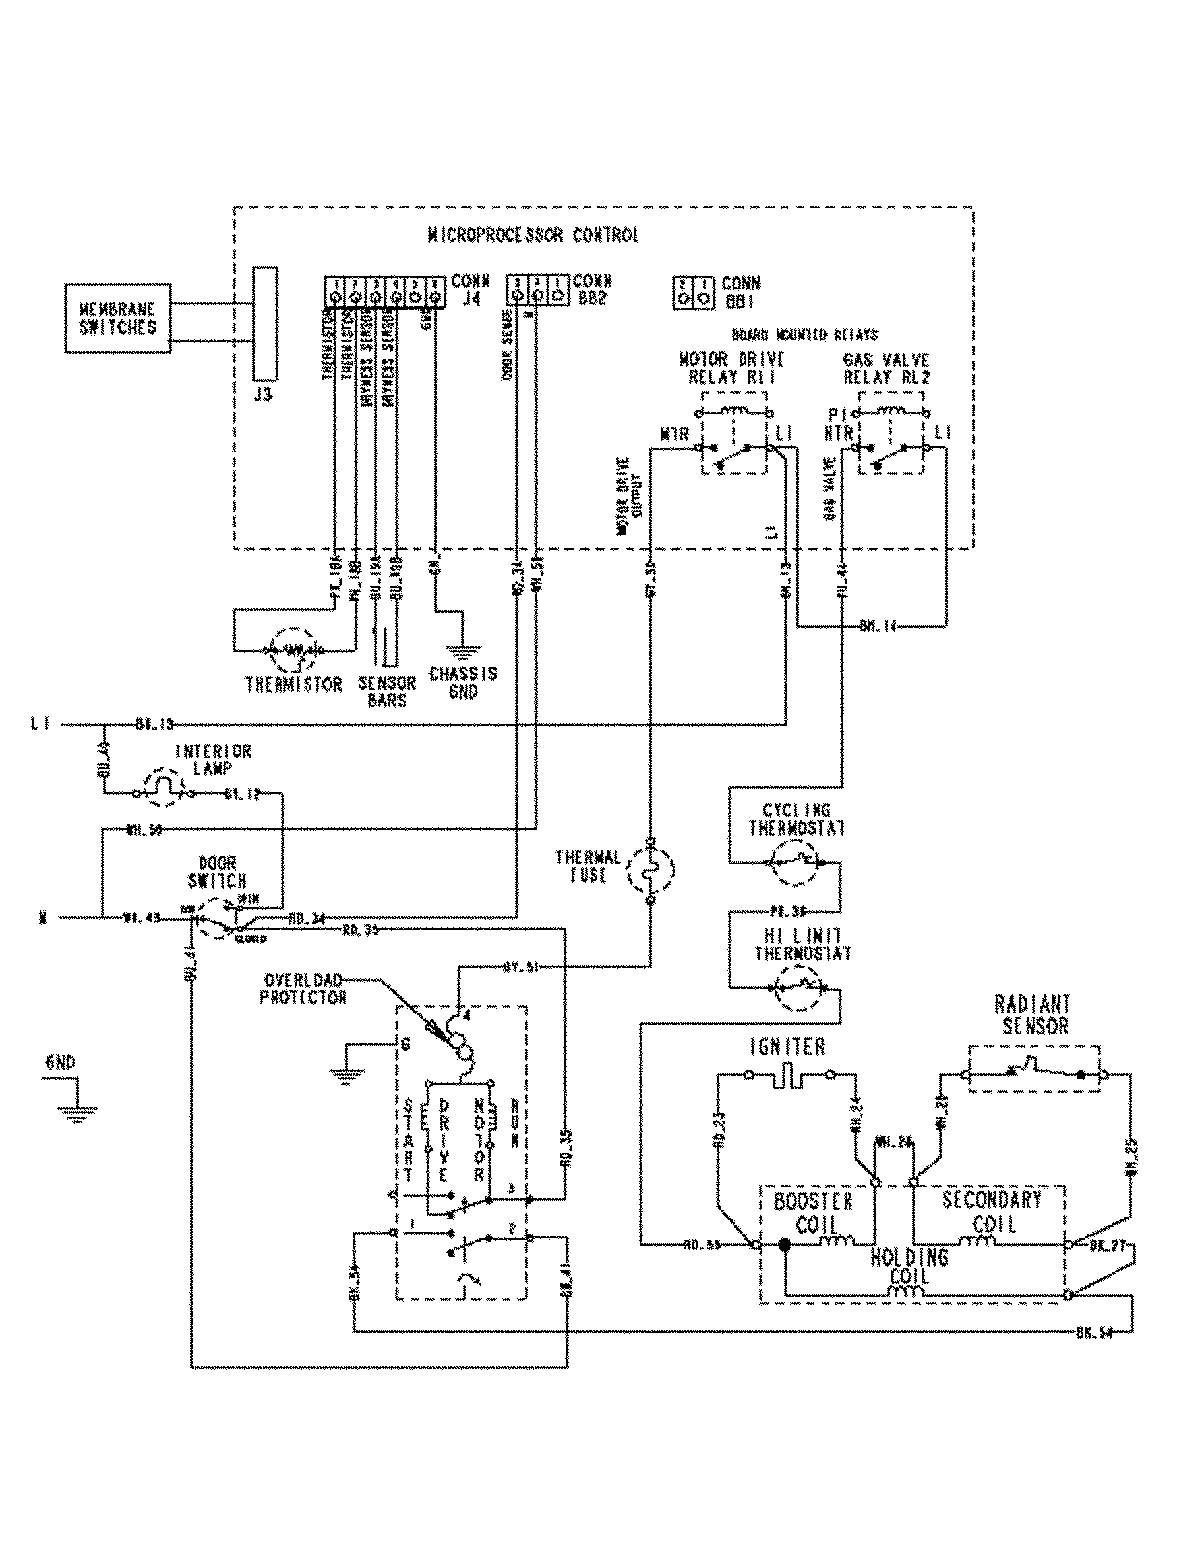 hight resolution of maytag dryer electrical schematic wiring diagram source maytag dryer schematic dg810 maytag dryer schematics